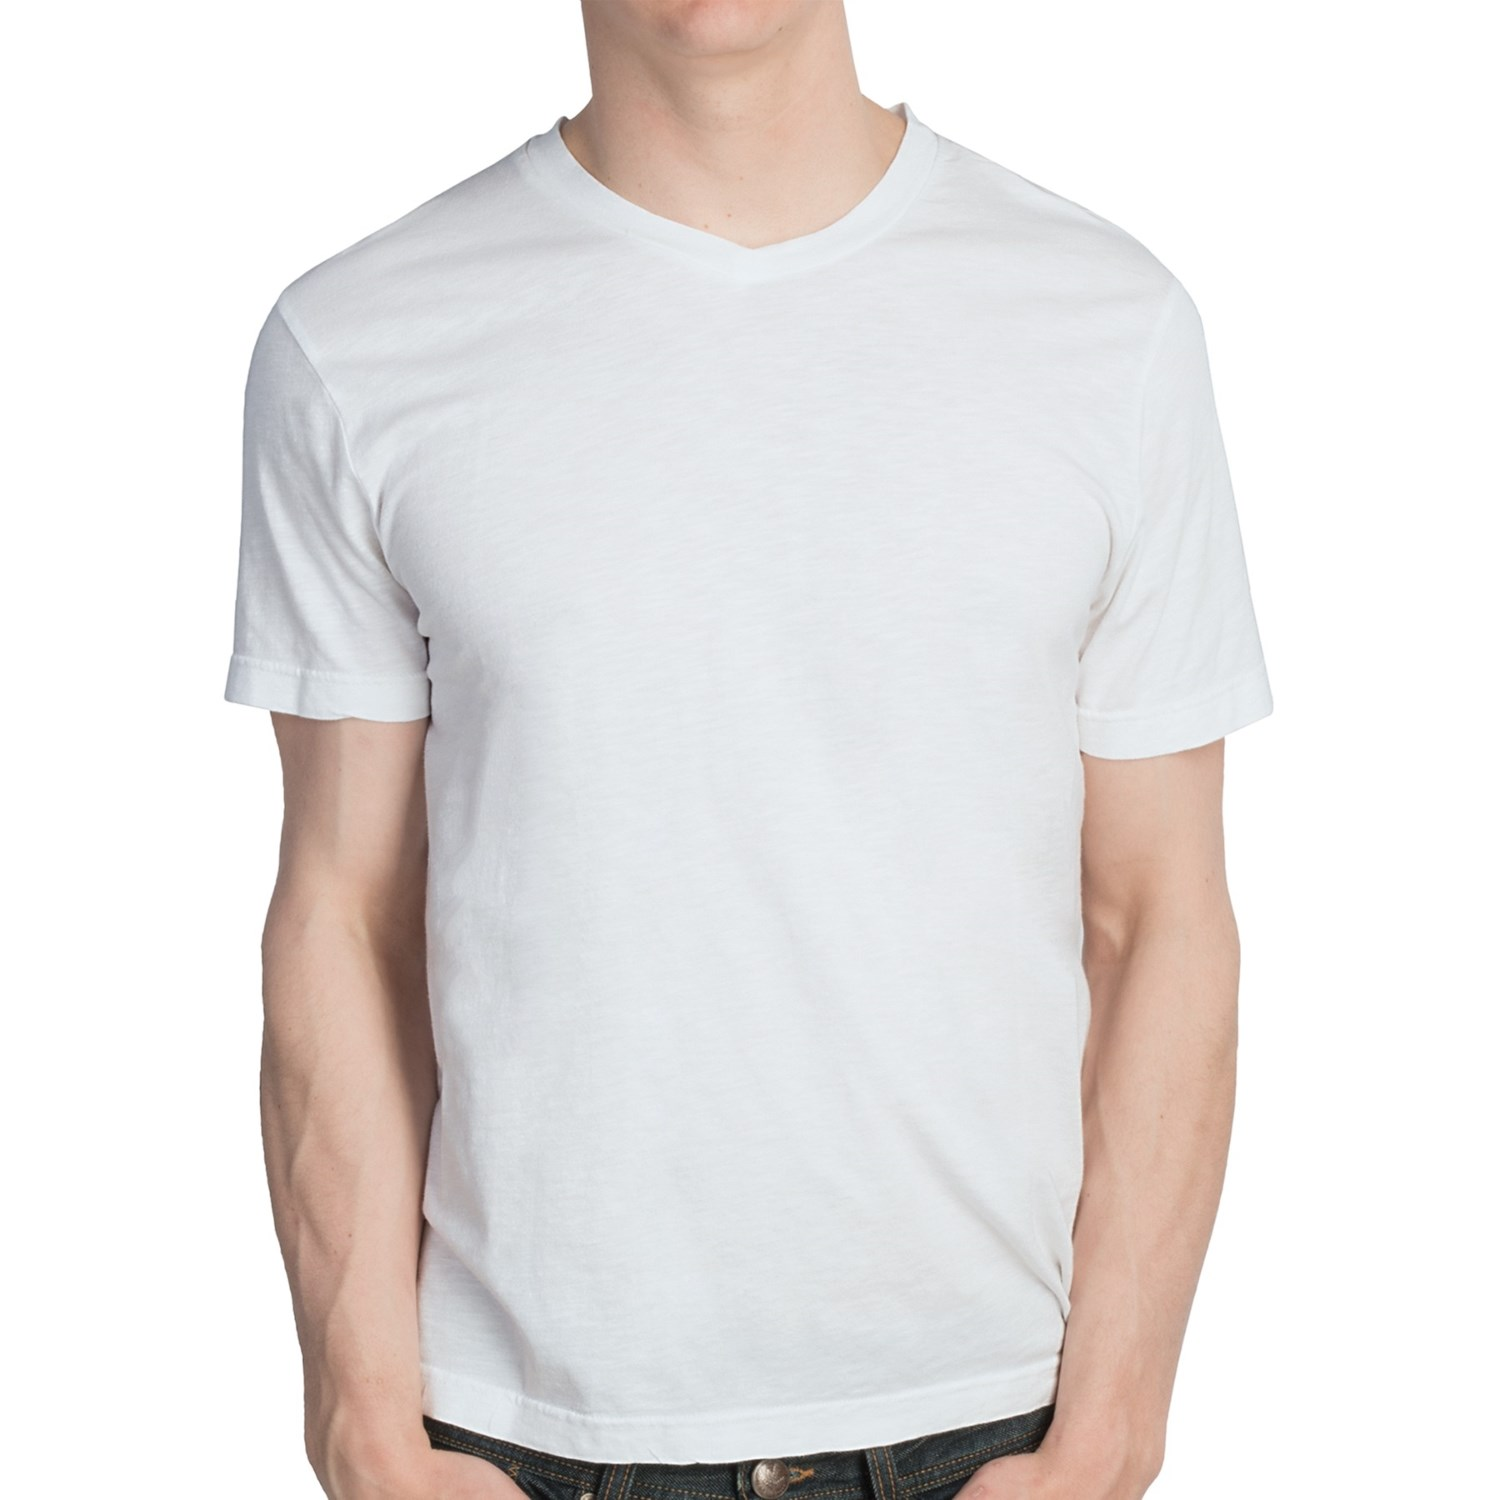 Reed edward slubbed v neck t shirt cotton modal short for Modal t shirts mens